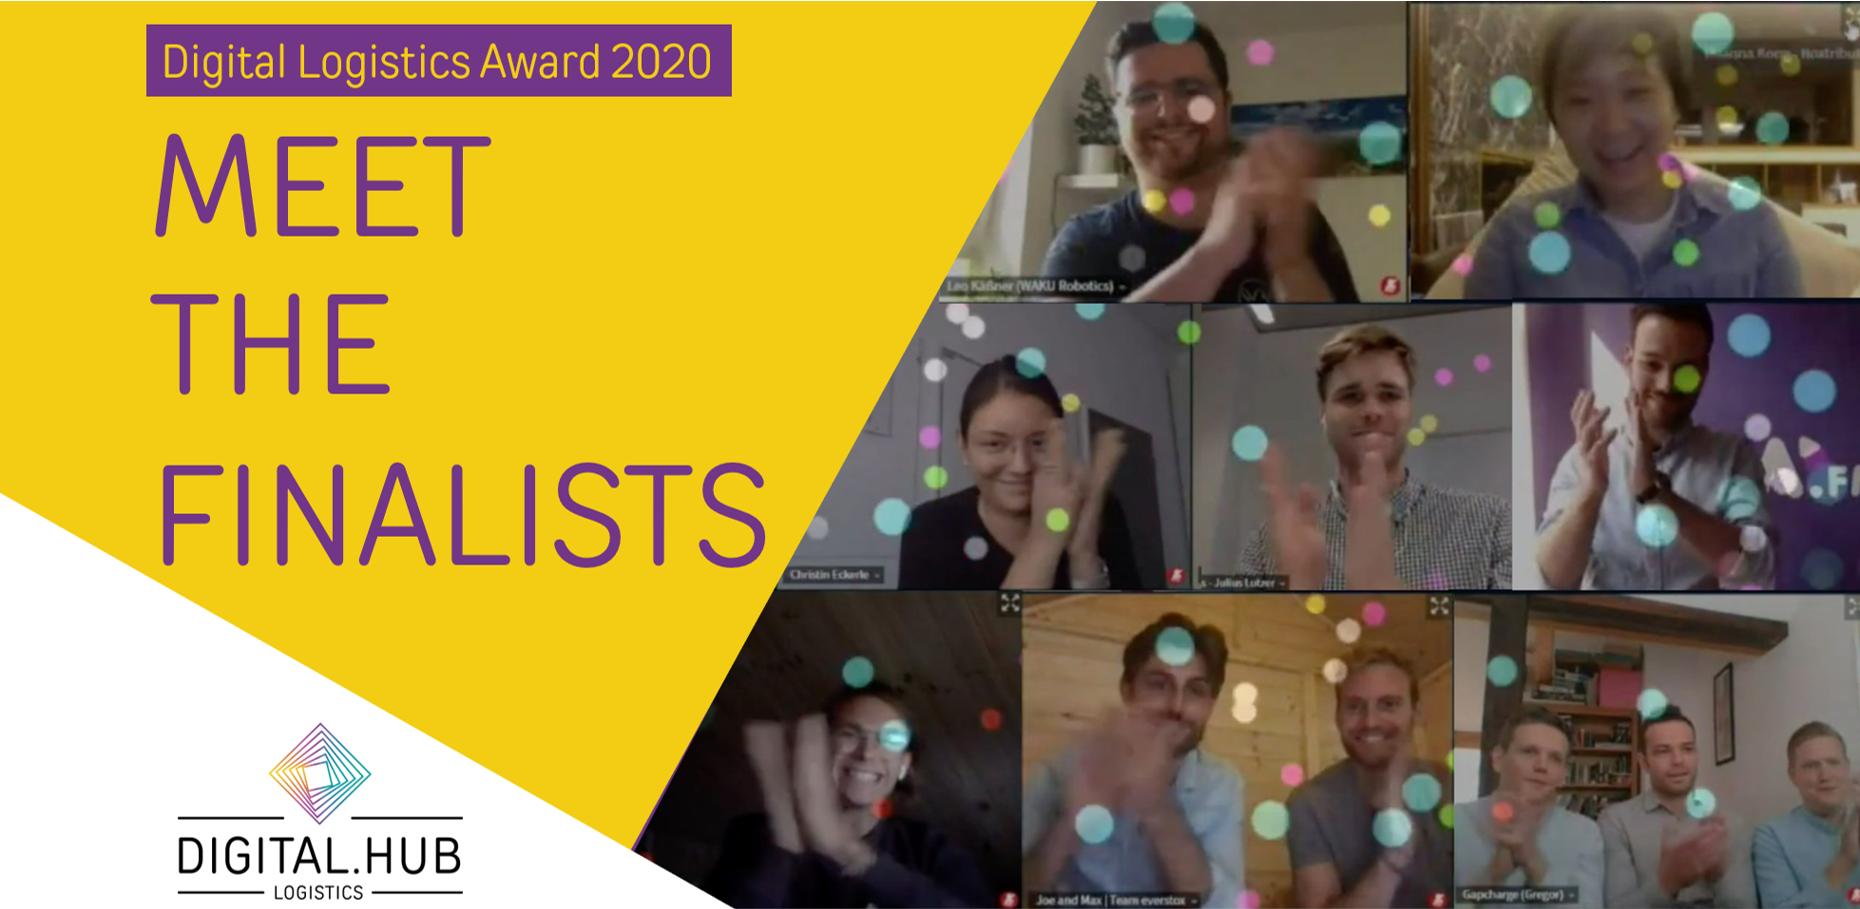 Meet the Finalists of the Digital Logistics Award 2020 #2